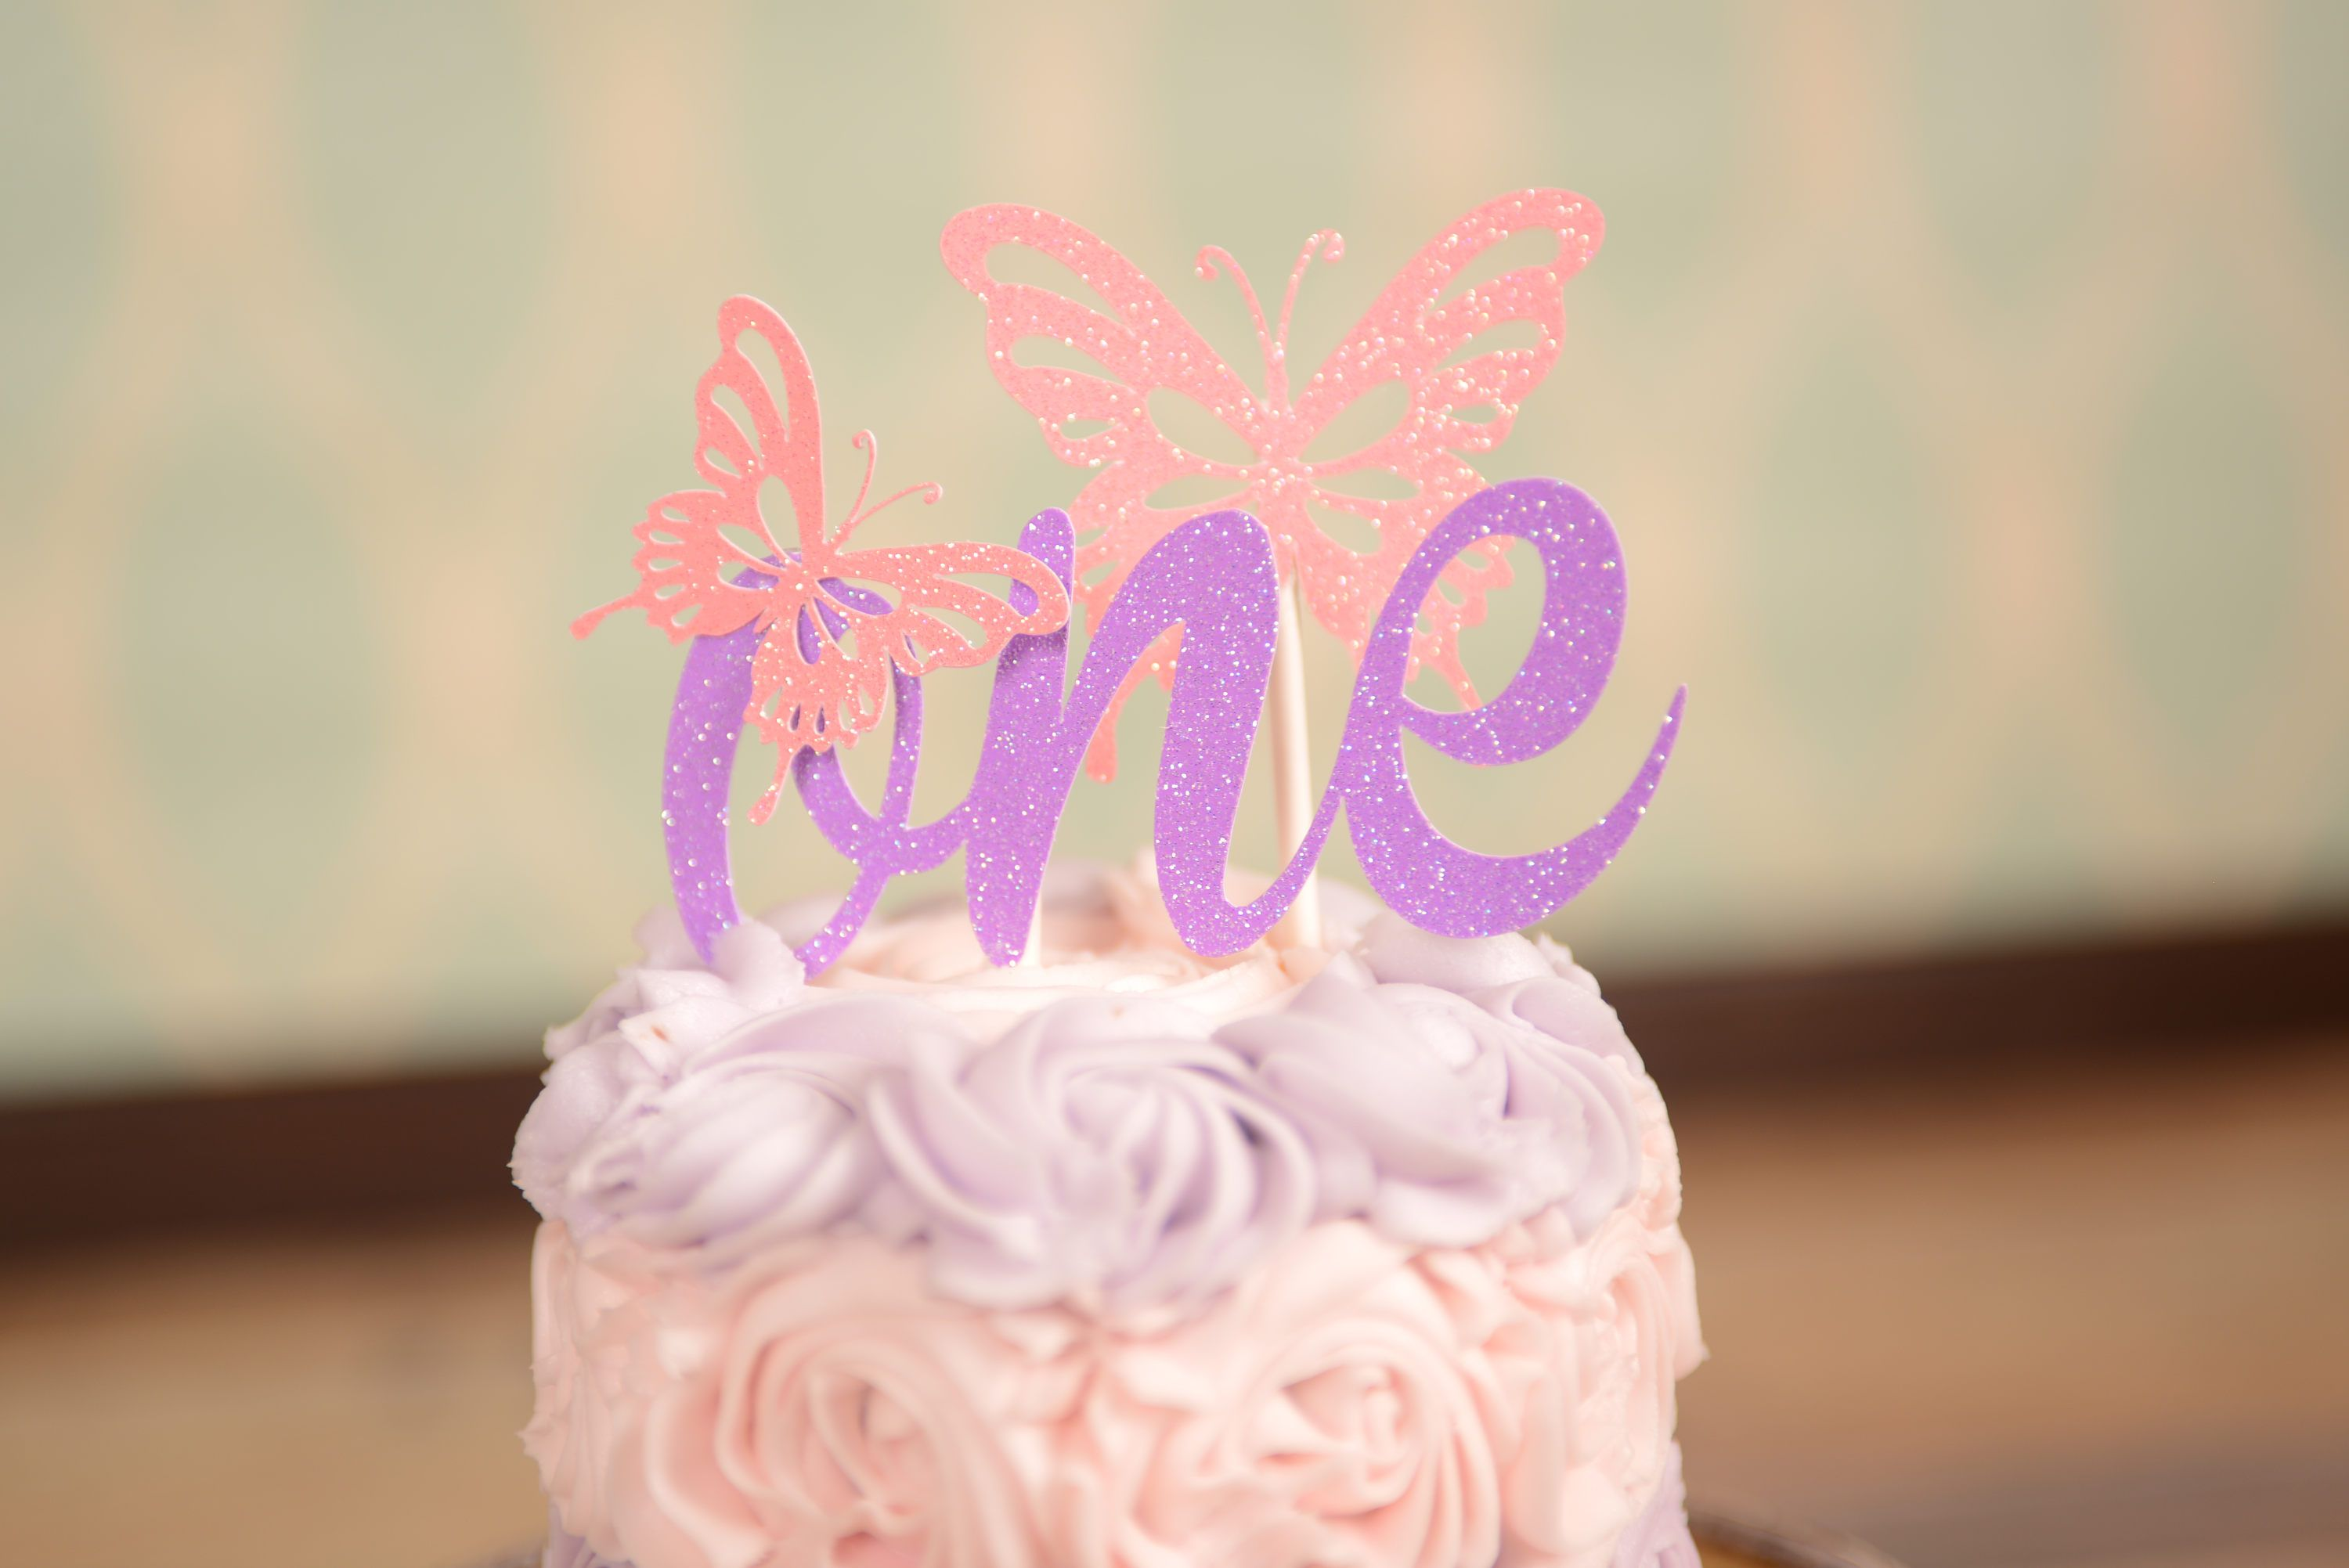 Butterfly Cake Topper One Cake Topper Gold One Cake Topper Smash Cake Topper First Birth Butterfly Cake Topper Smash Cake Topper First Birthday Cake Topper